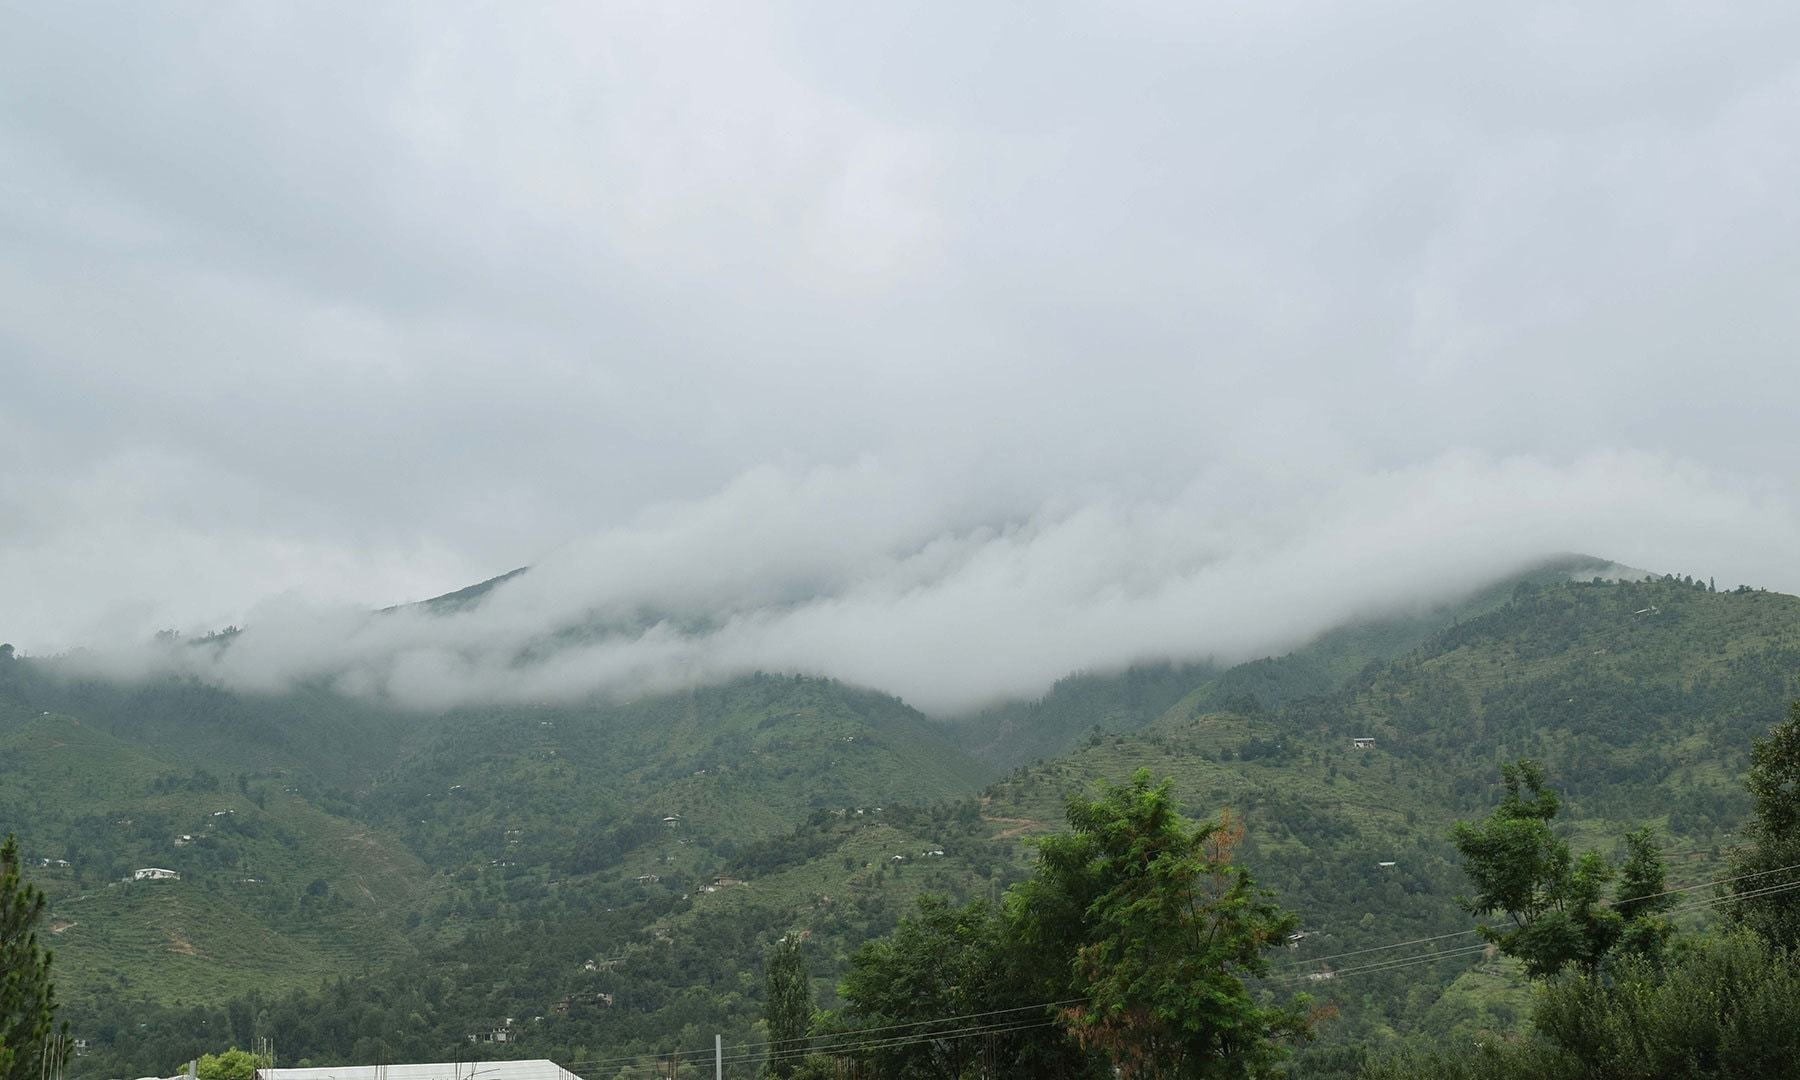 Gwalerai's cloud-covered mountains are called 'Awarai' by locals.